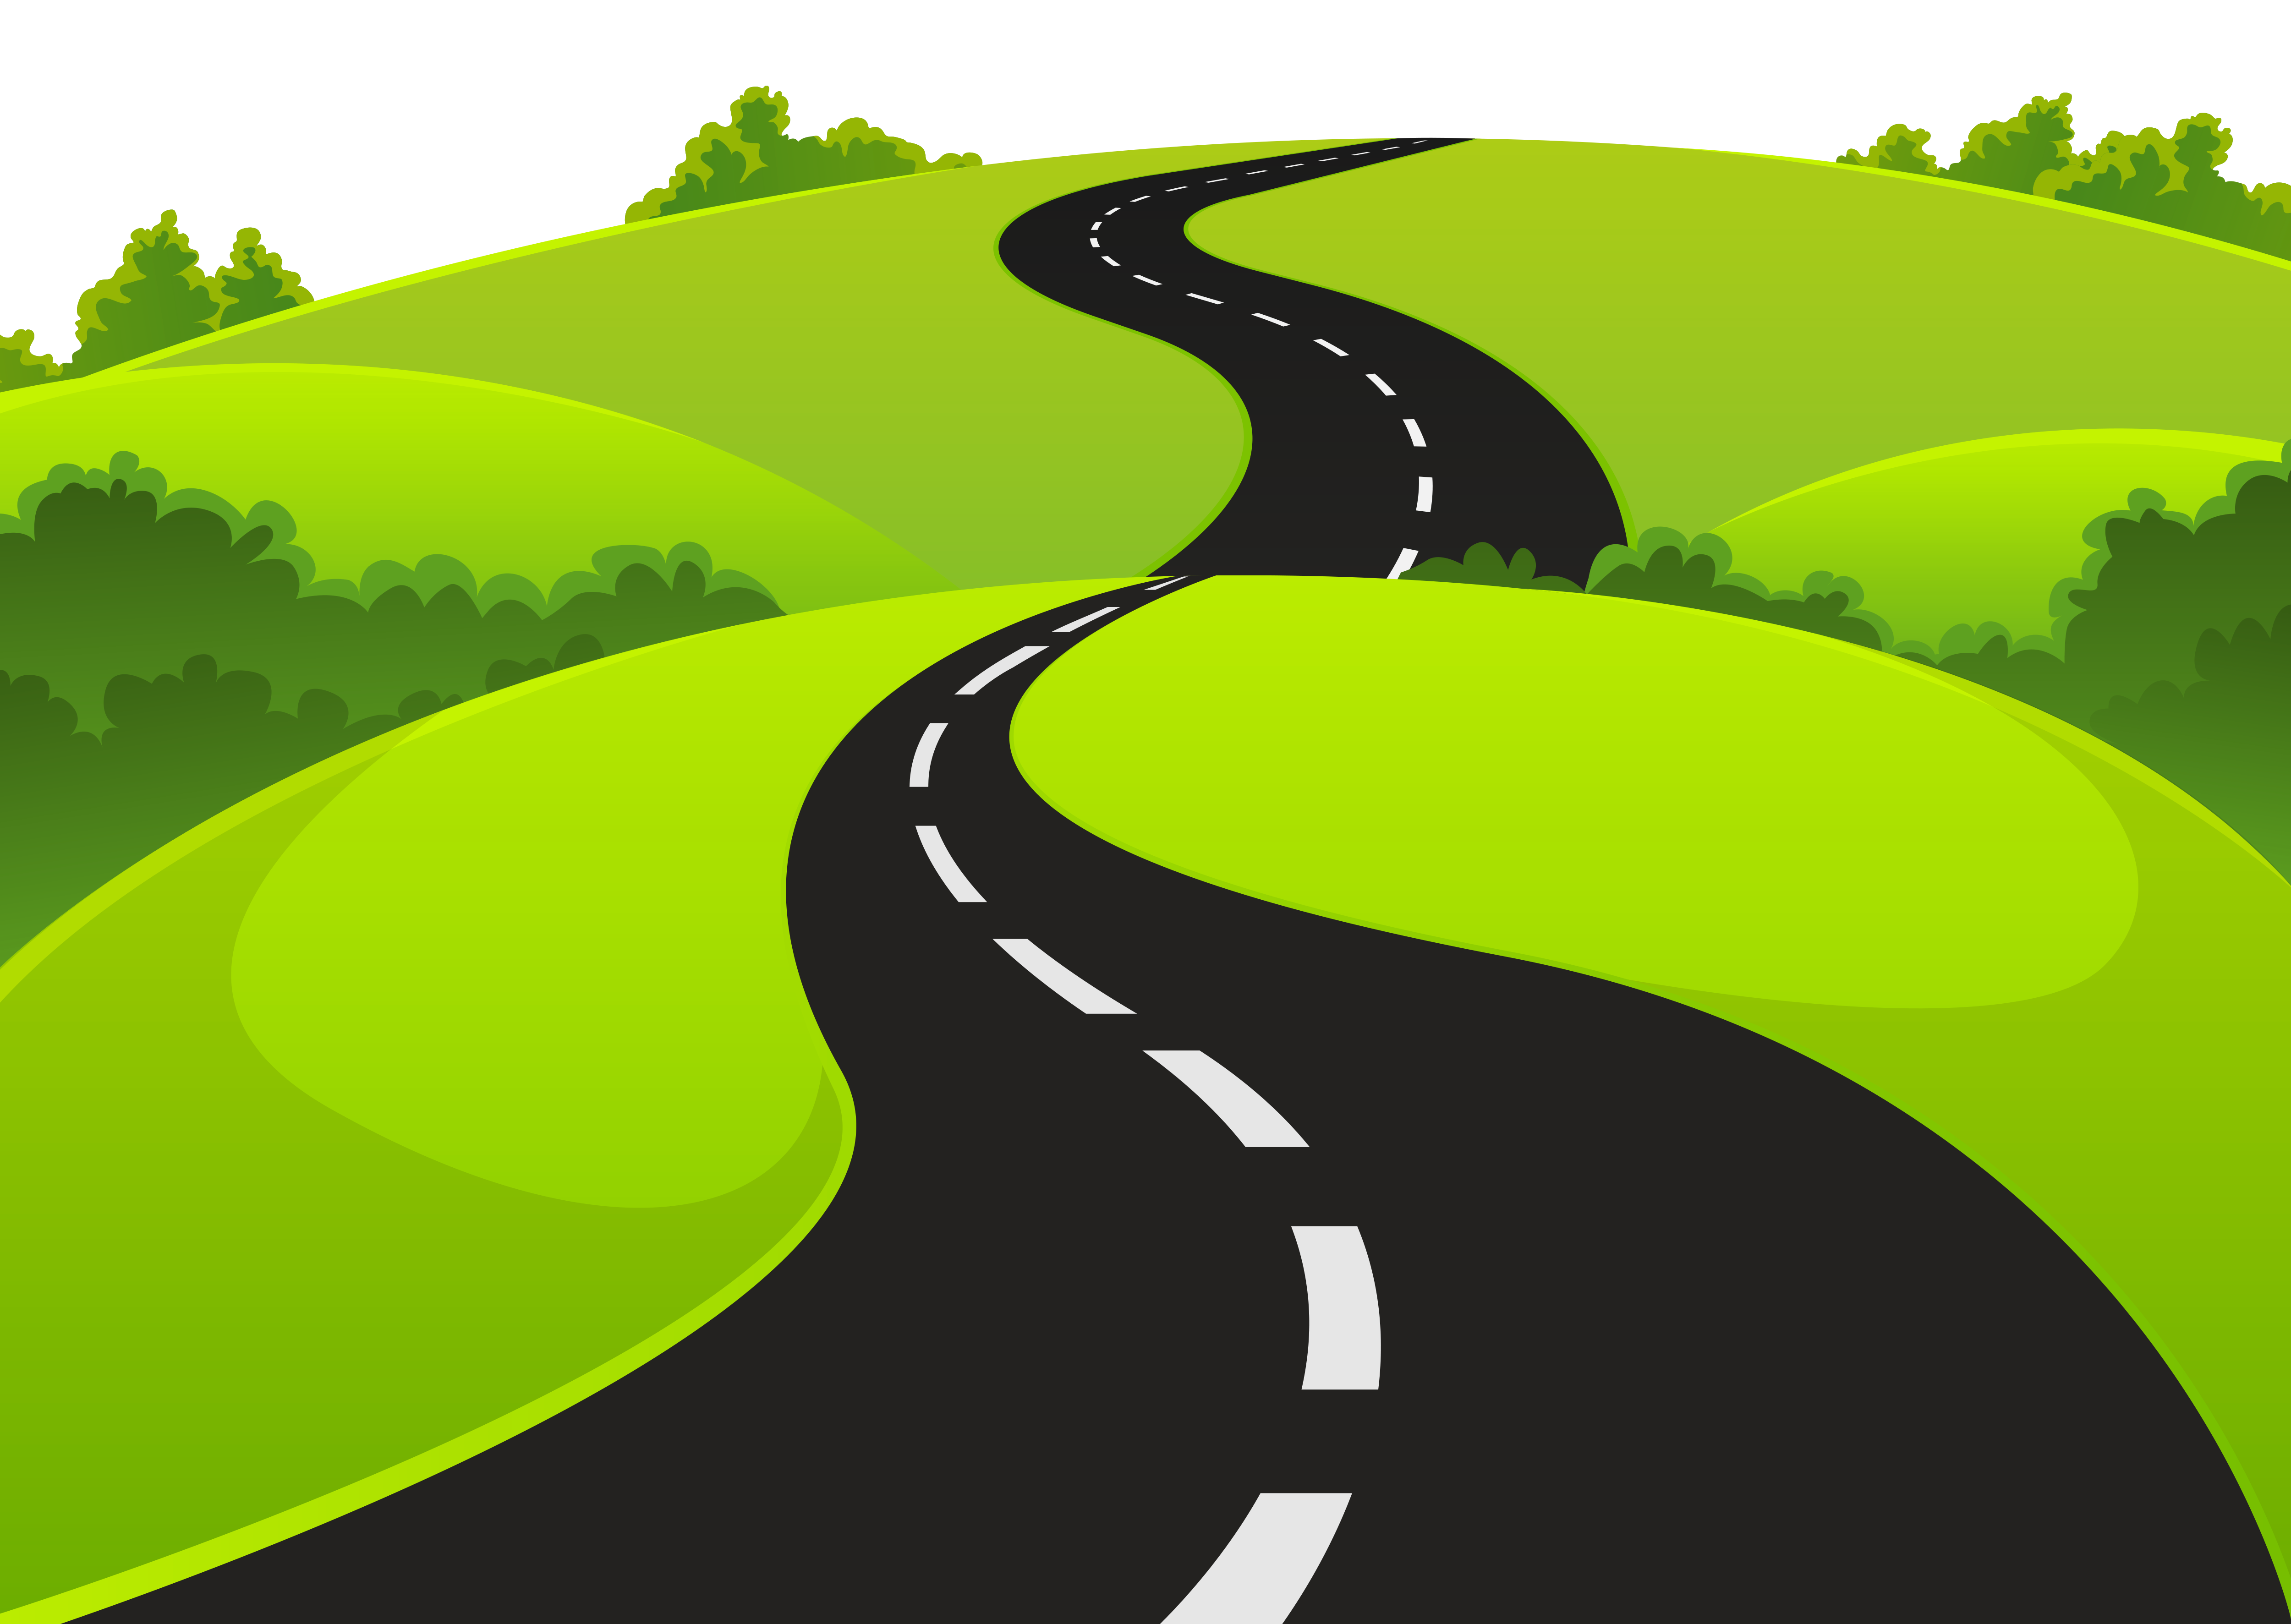 Clipart road. And grass png picture